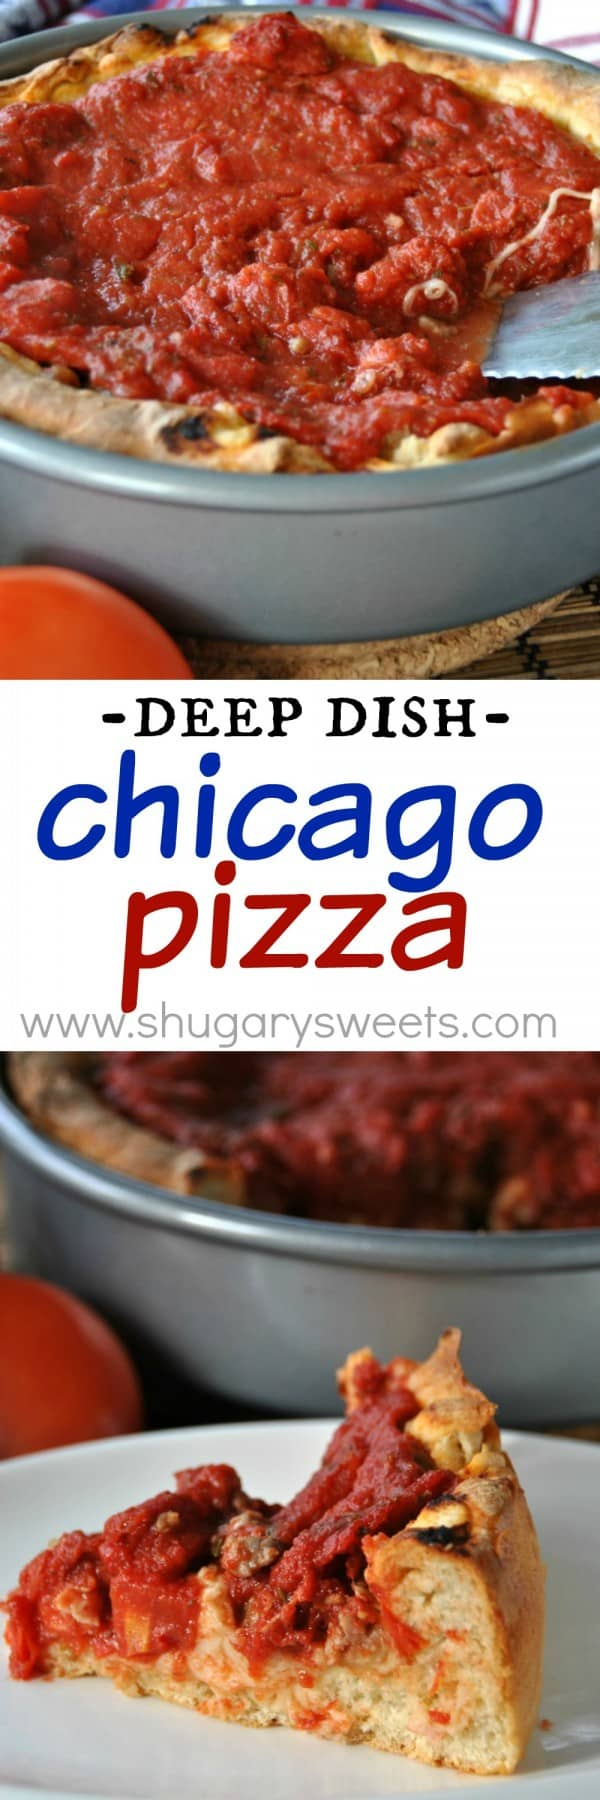 Deep Dish Chicago Style Pizza- make your own deep dish pizza at home!